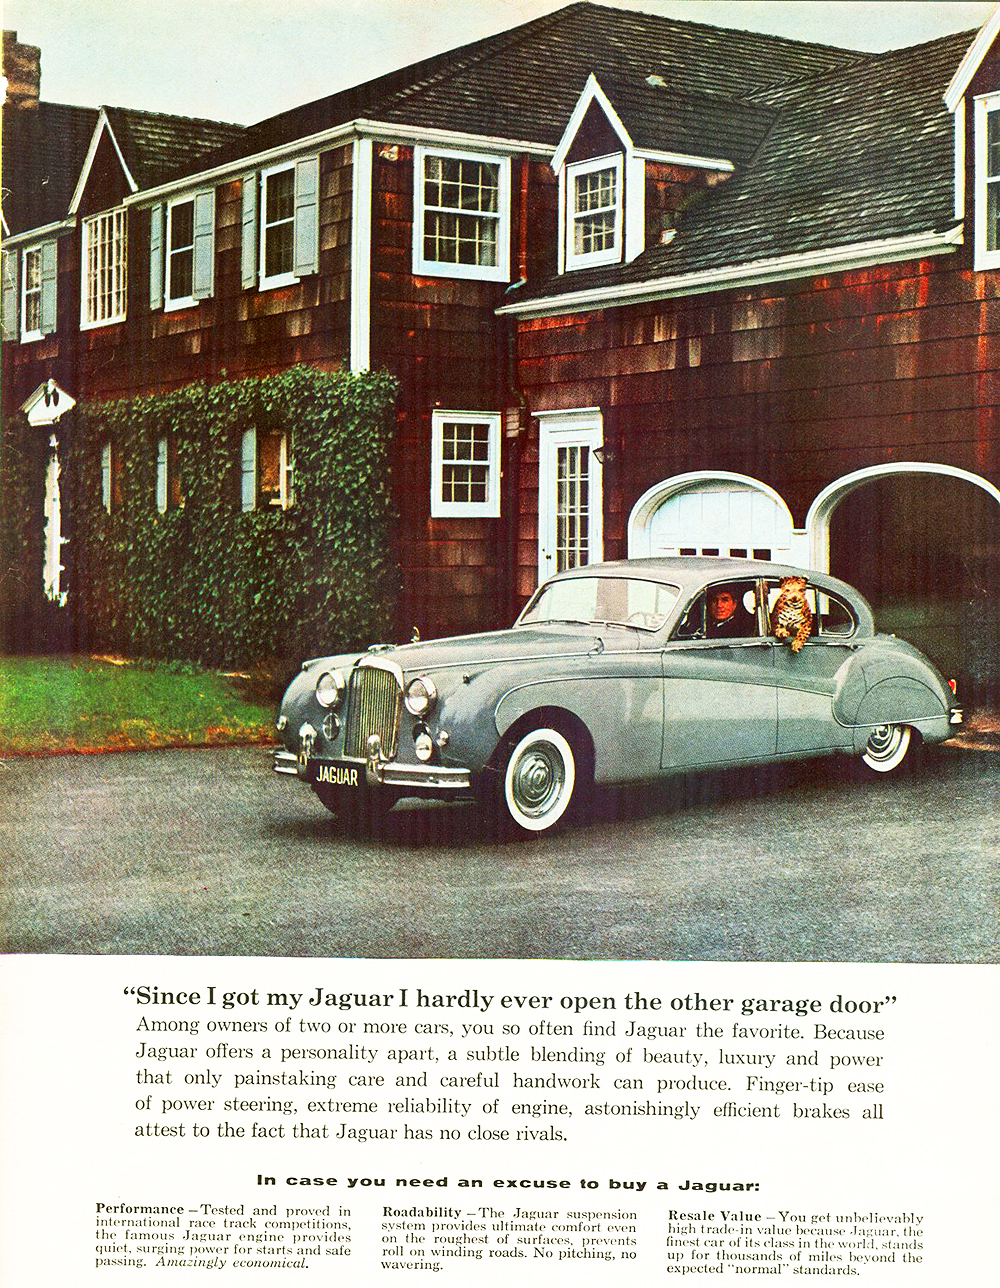 1959 Jaguar Mark IX Saloon ad | CLASSIC CARS TODAY ONLINE